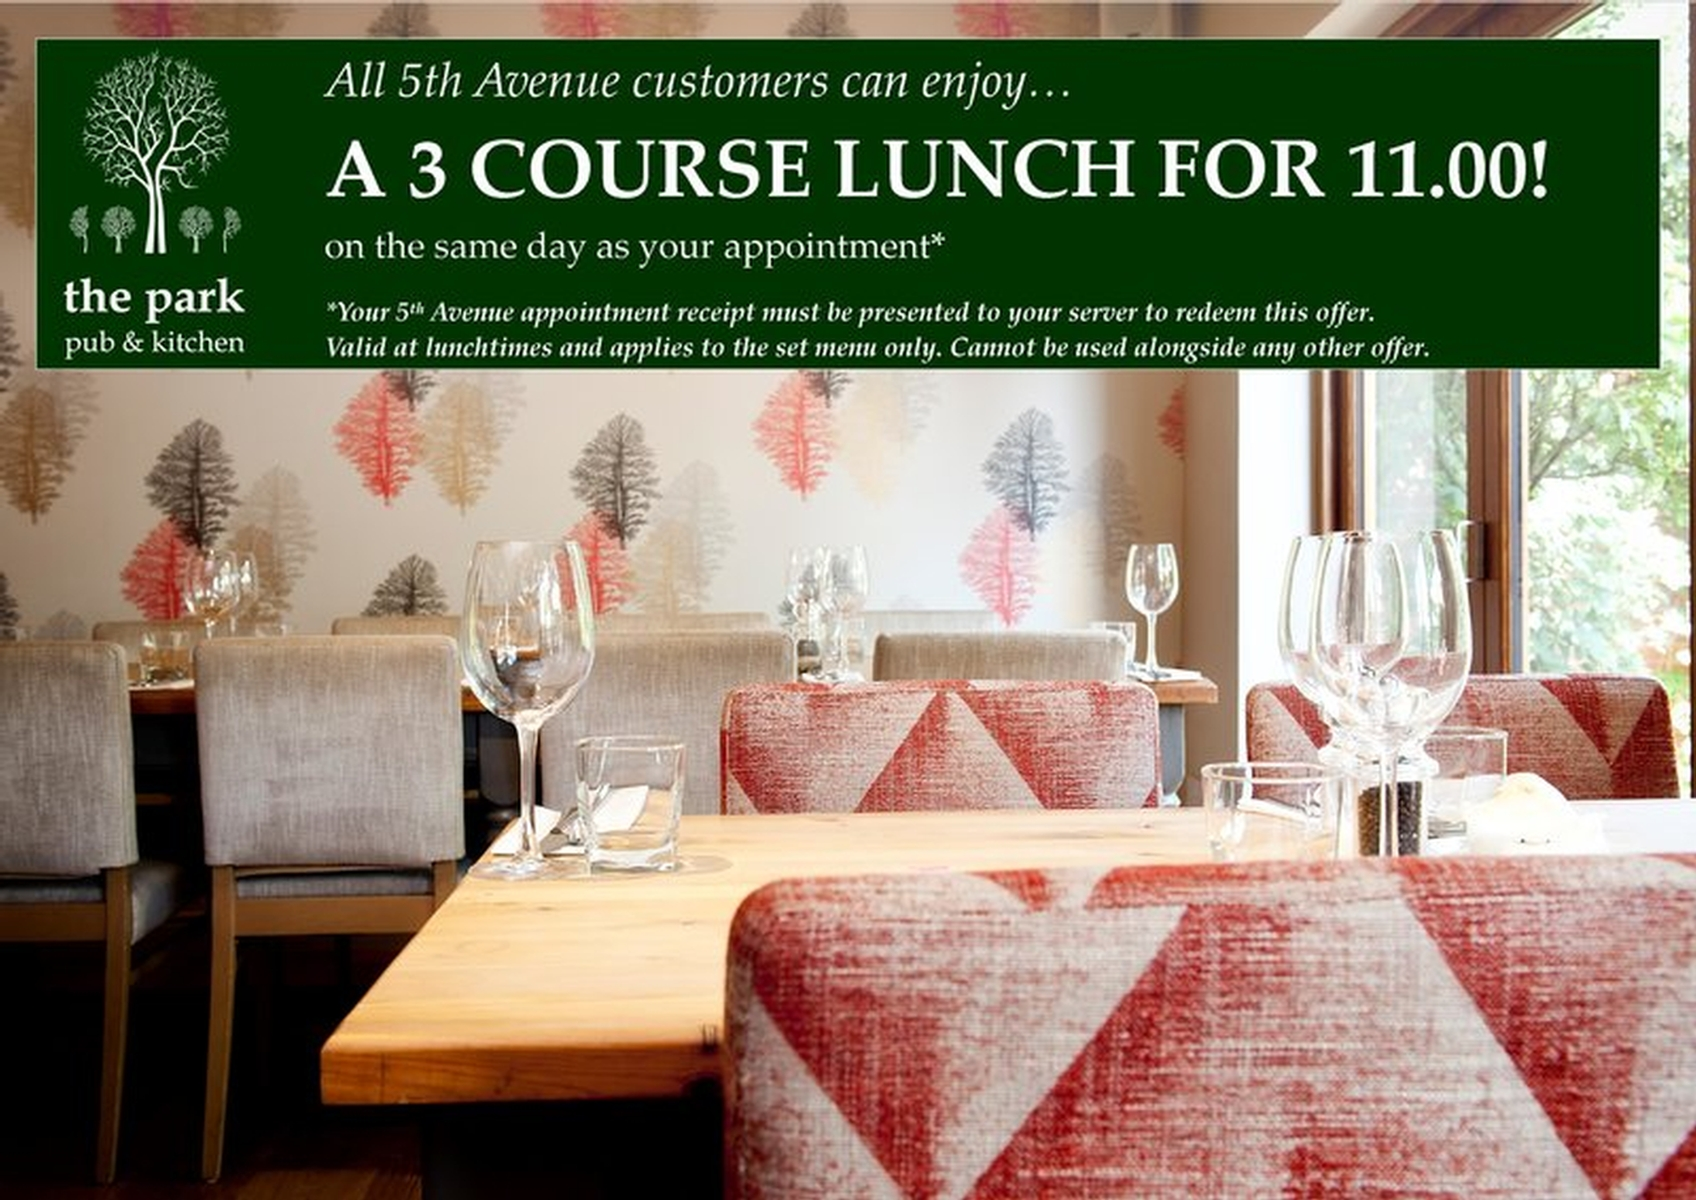 Local Dining Deal for 5th Avenue Clients